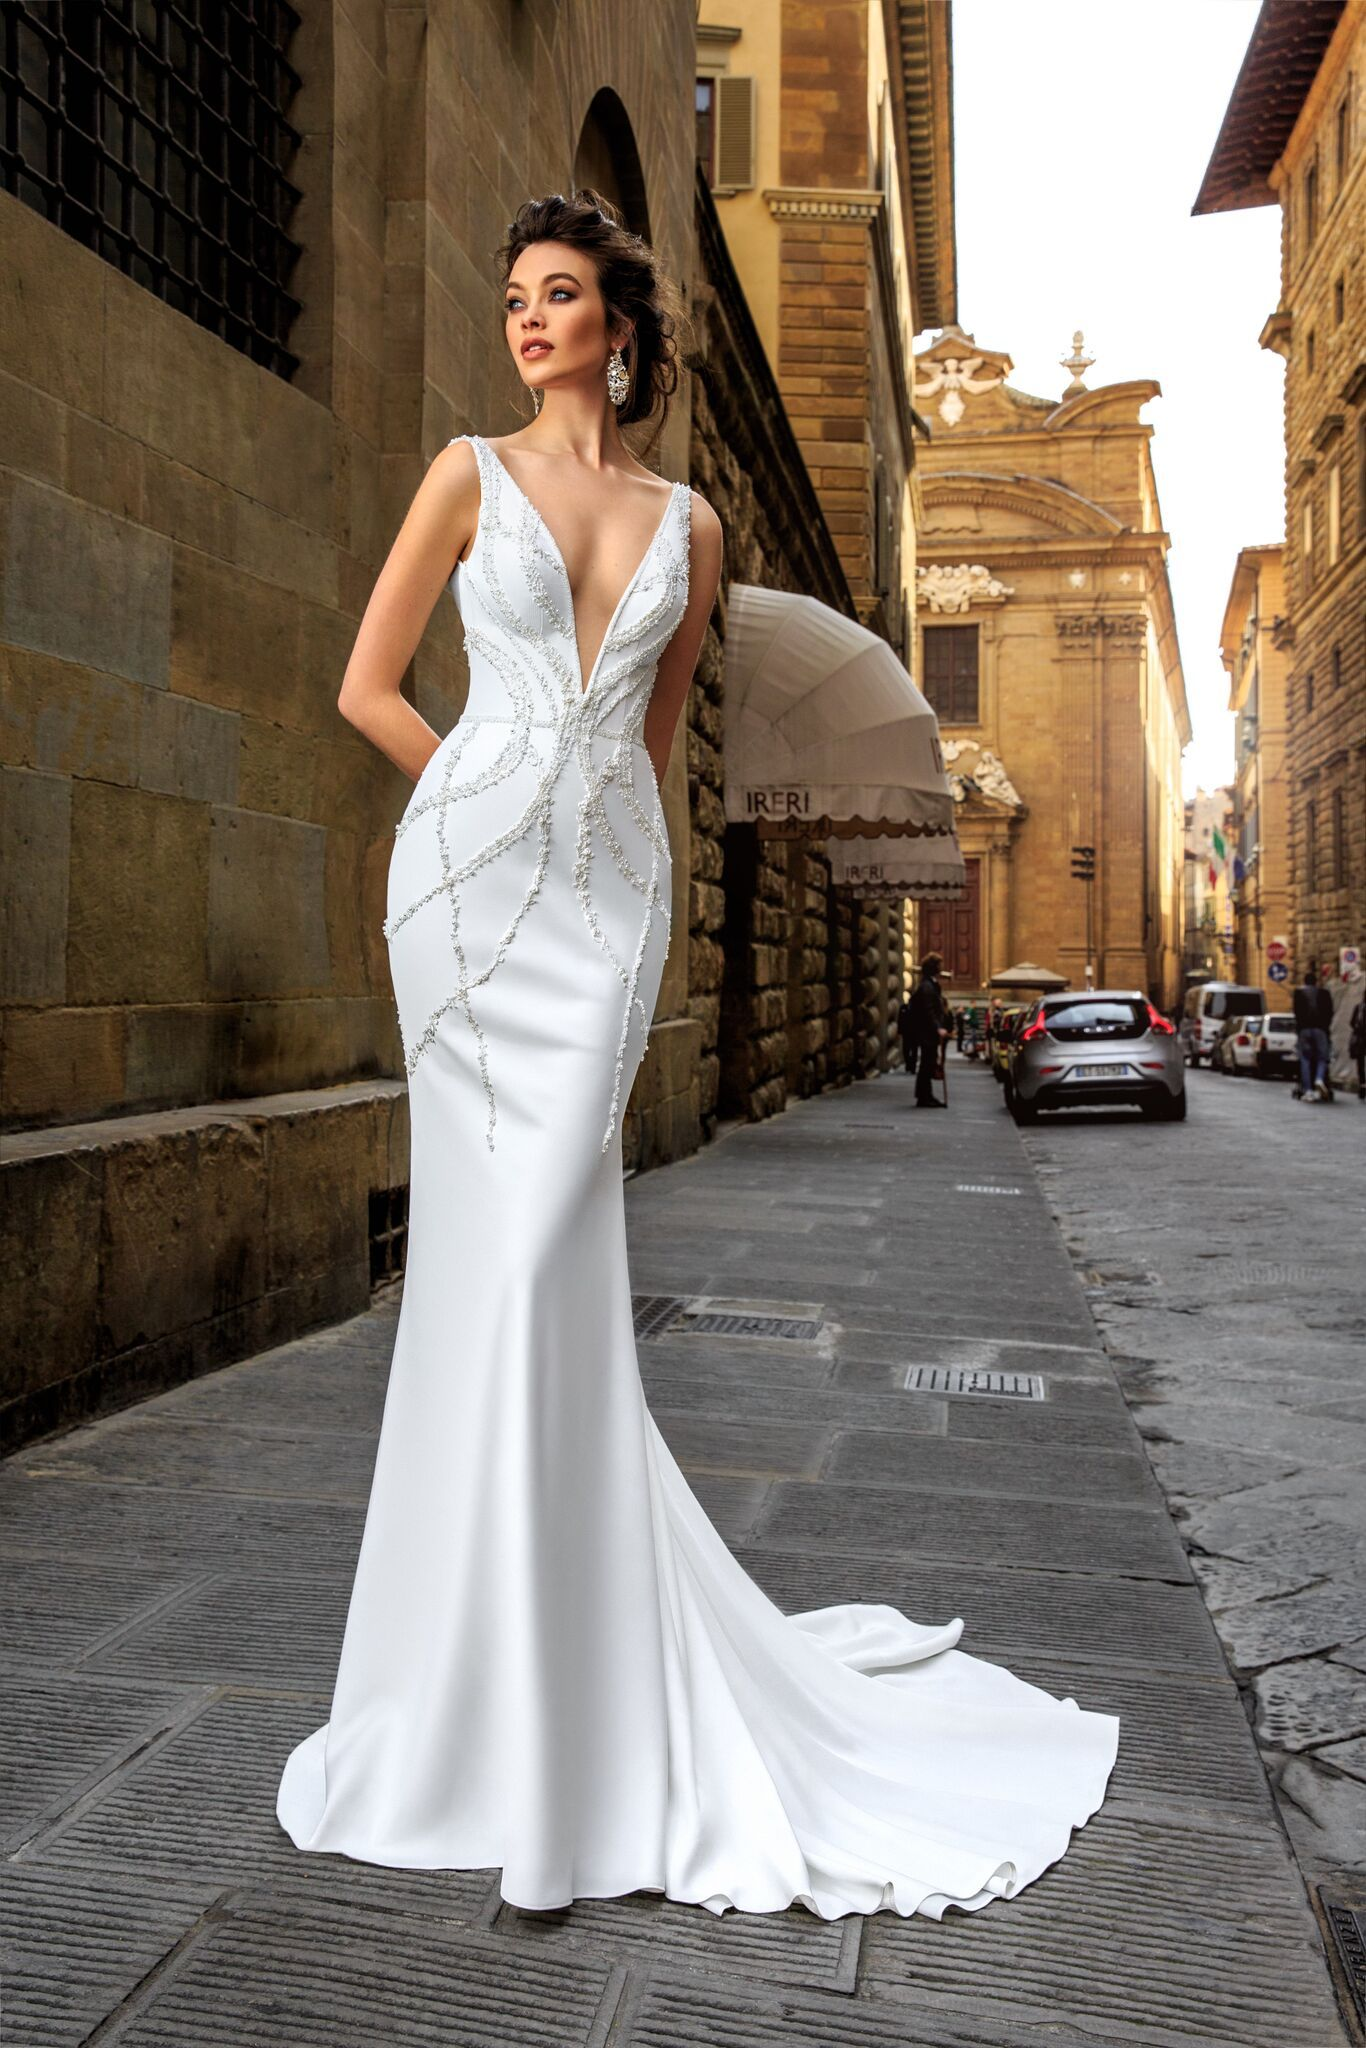 magnificent and elegant couture fit and flare wedding gown with